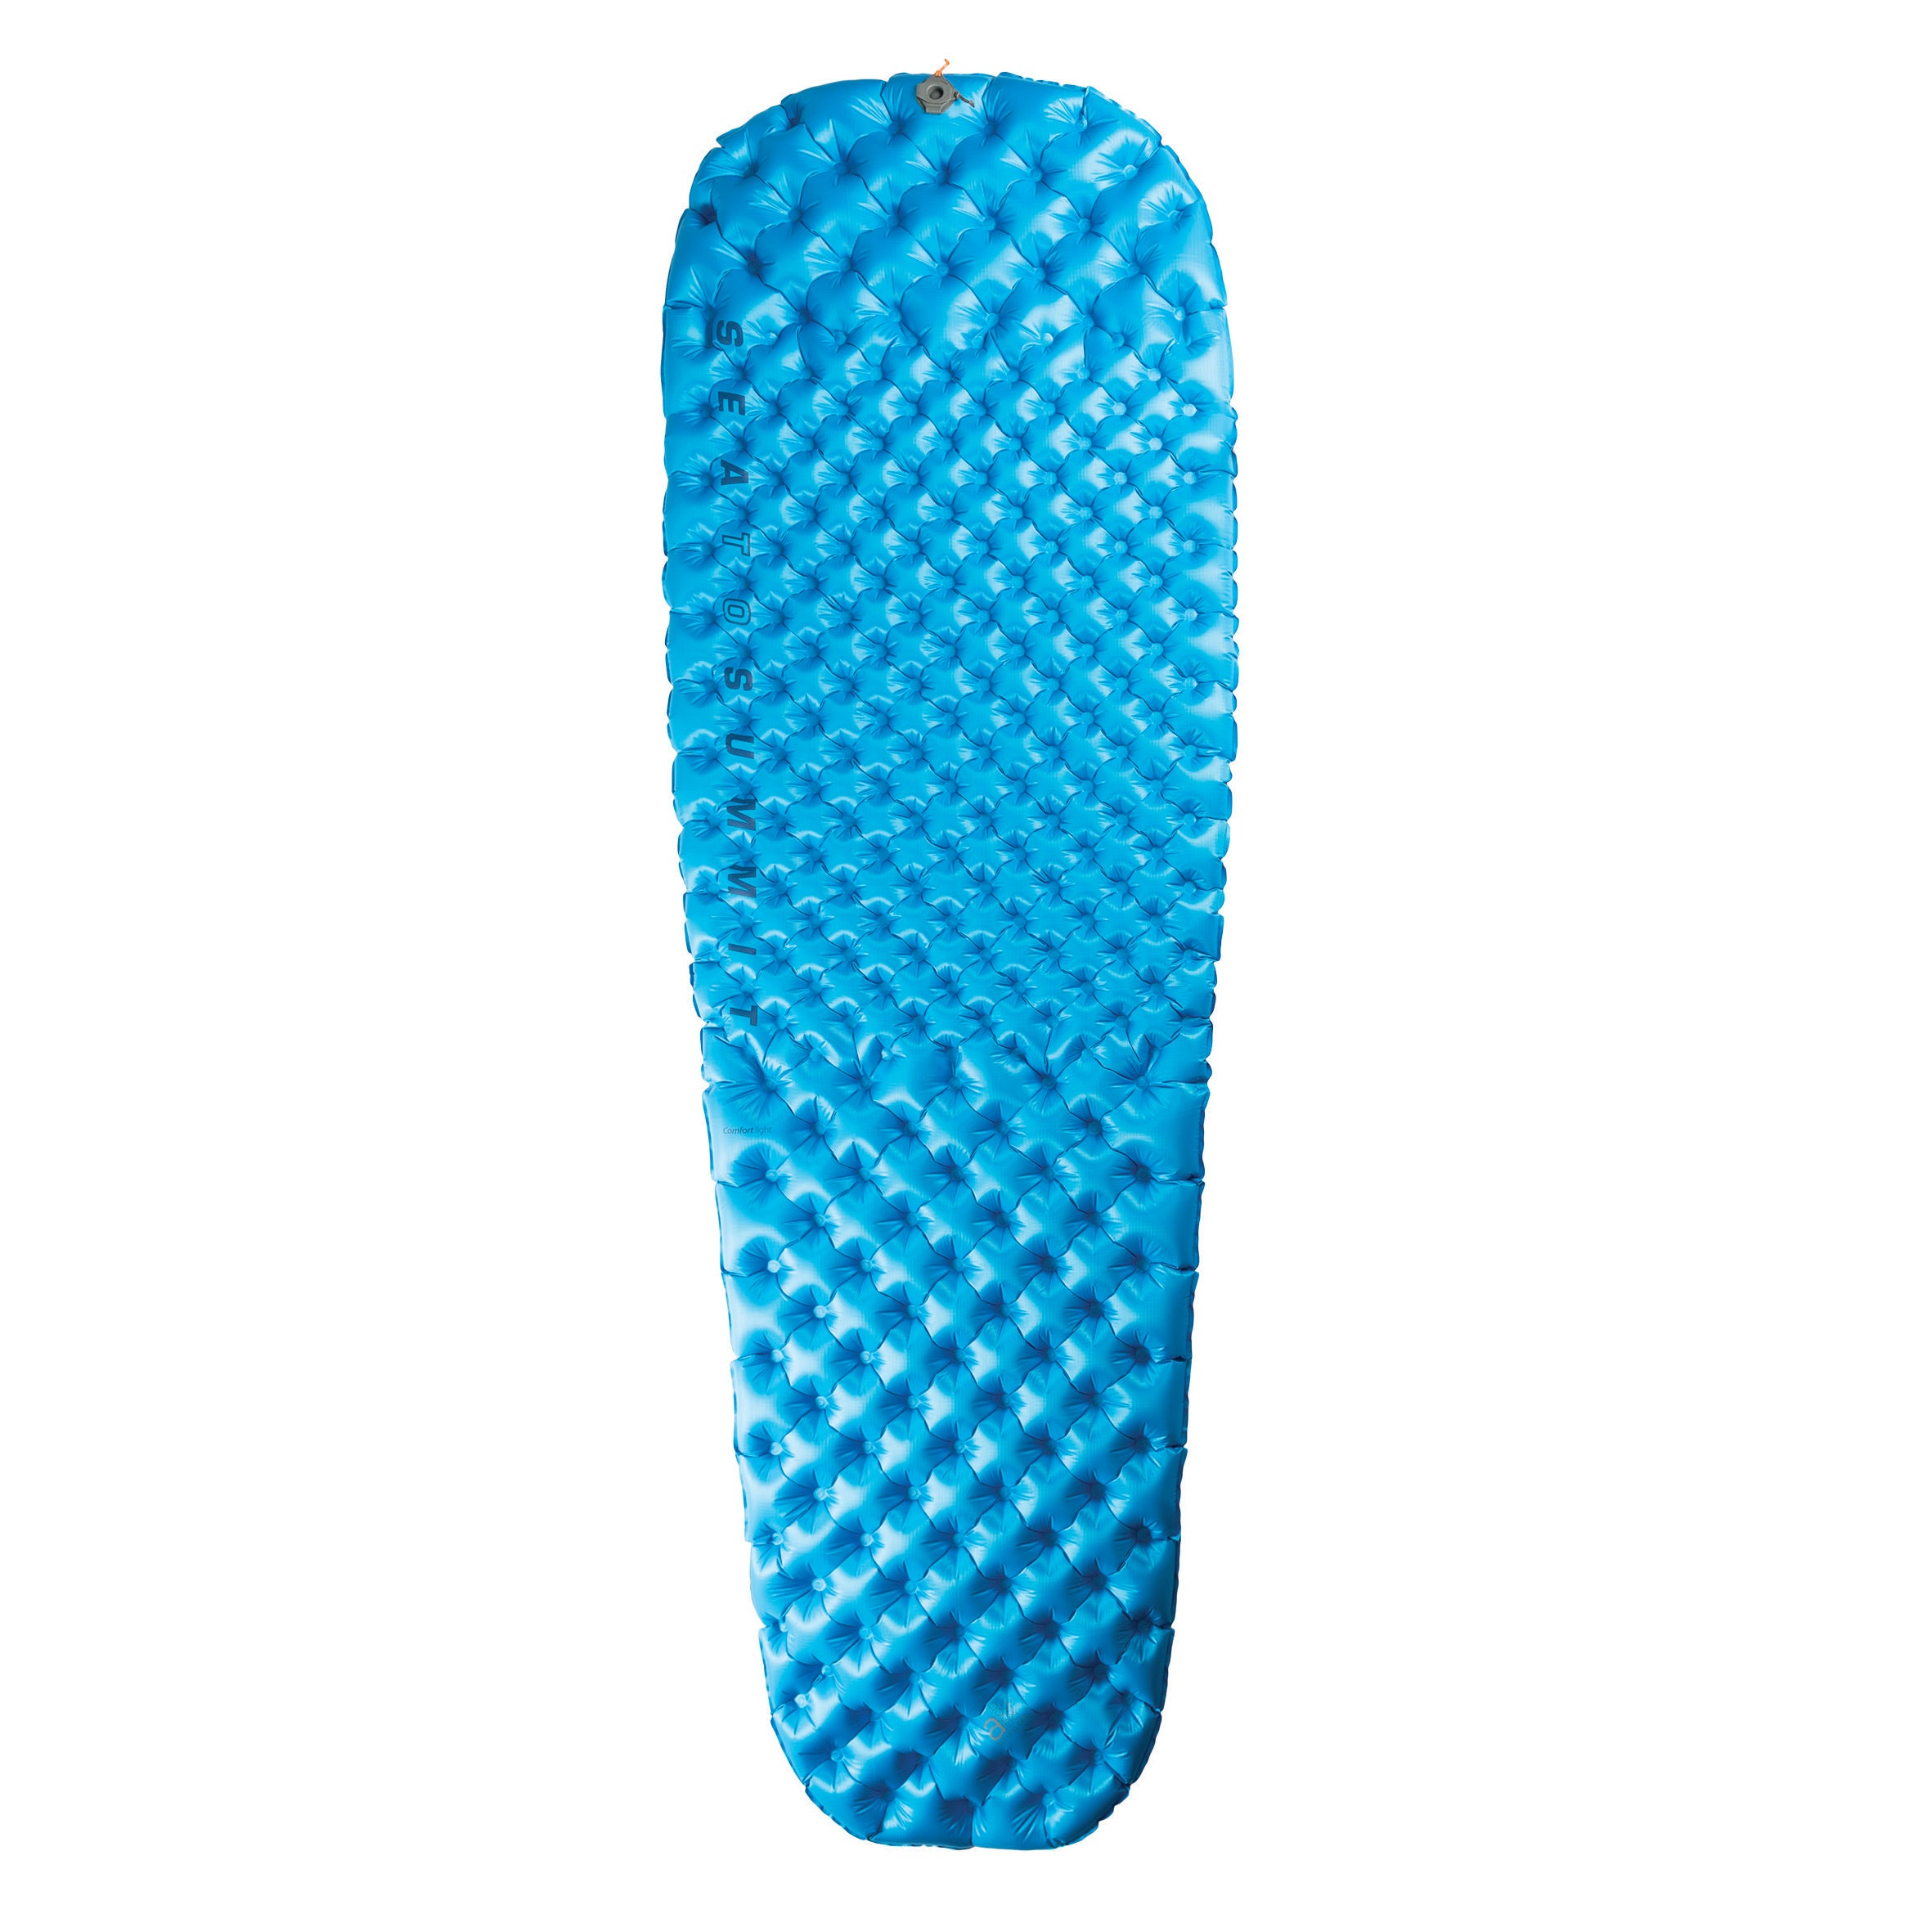 Comfort Light lightweight backpacking sleeping mat air pad for 2 seasons.